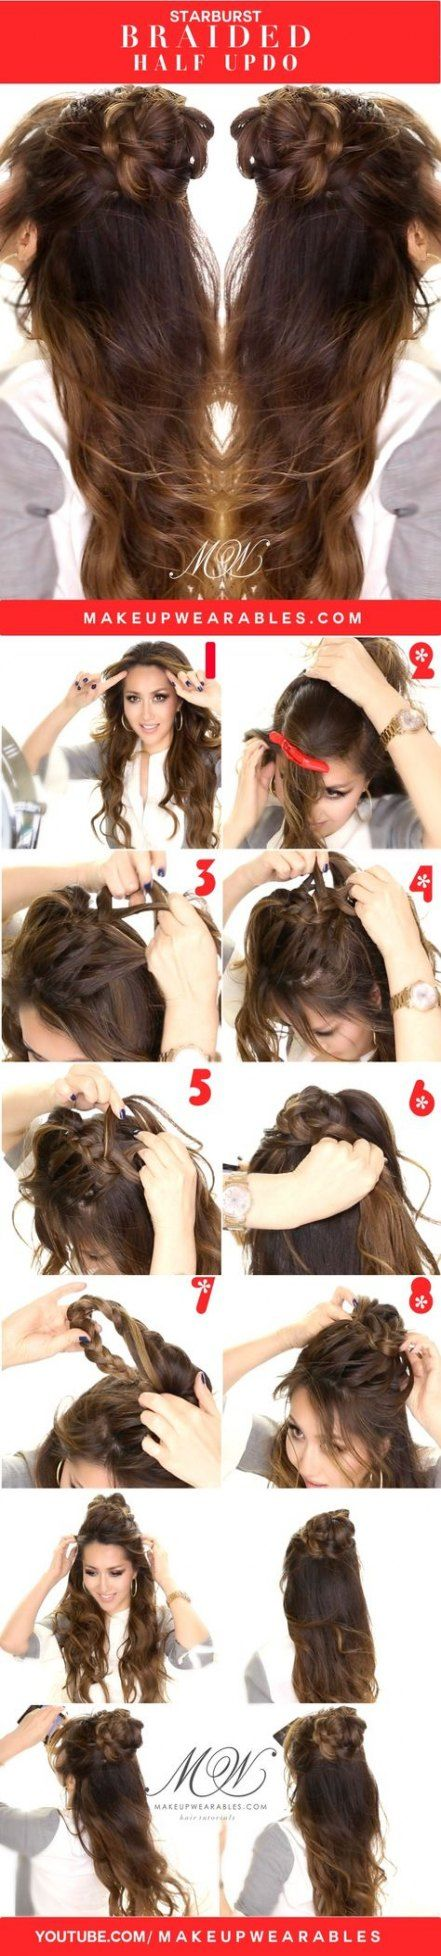 Bridal Hairstyles Half Up Half Down Braid Easy Diy 59+  Ideas